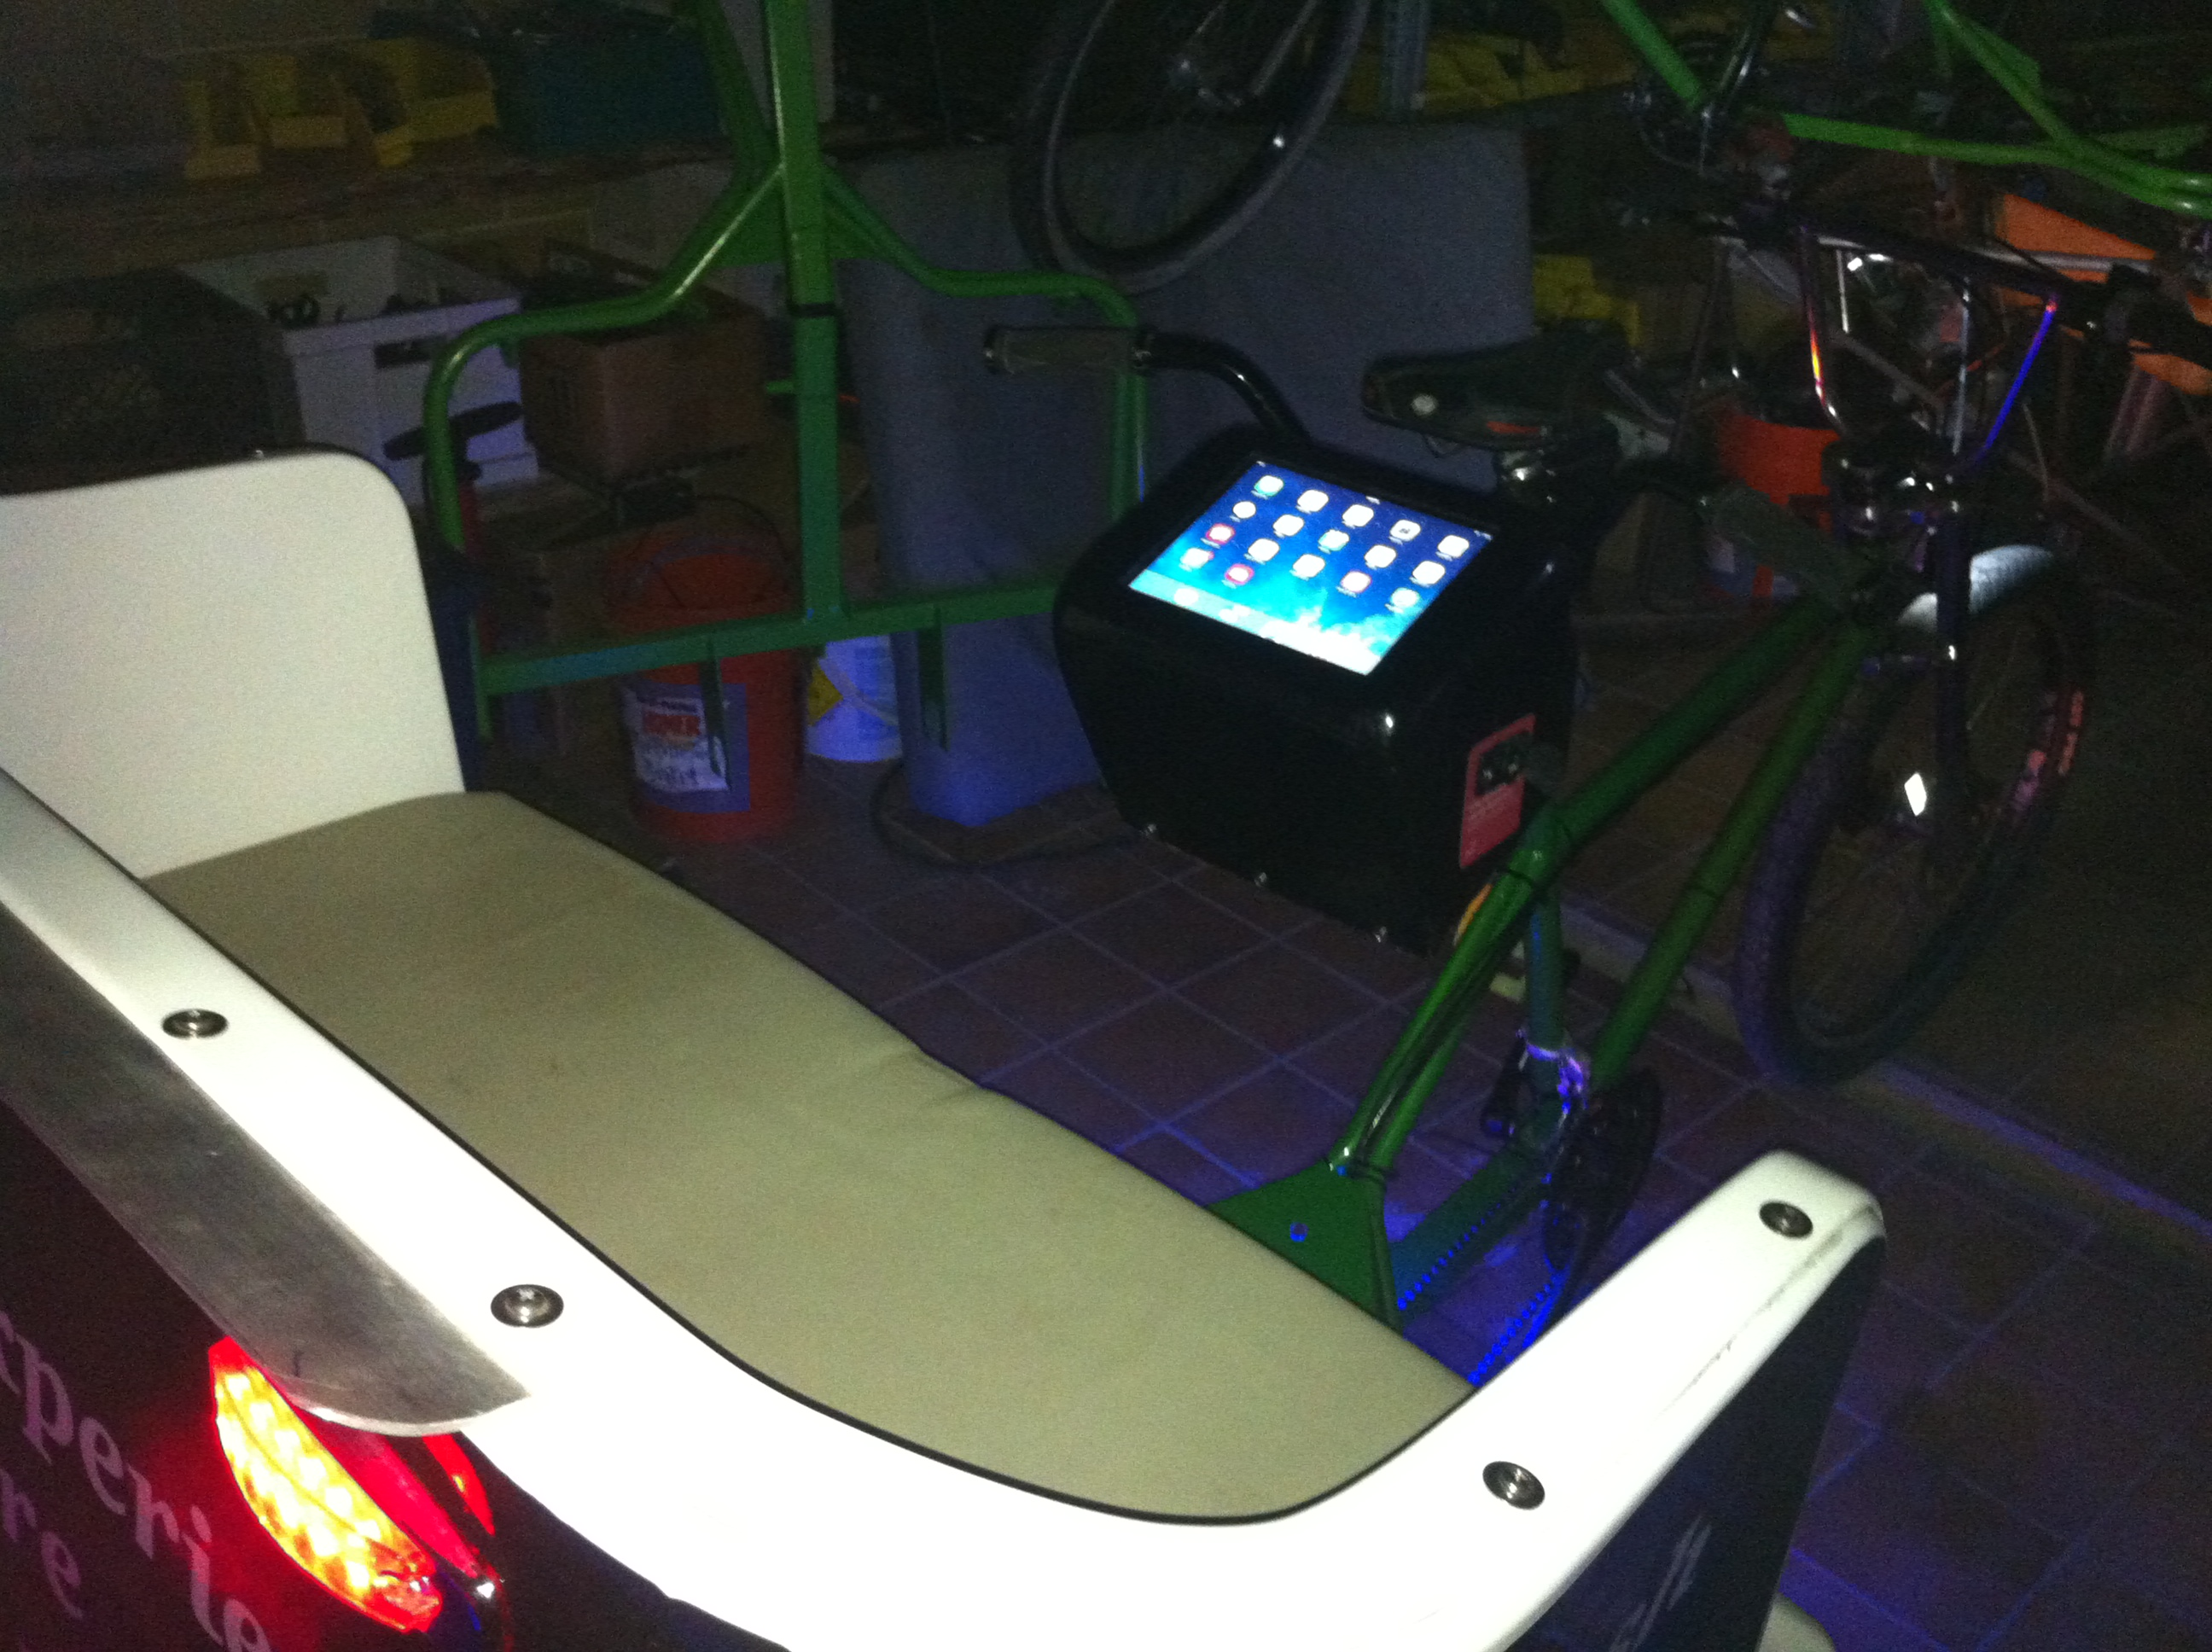 In pedicab iPad stations